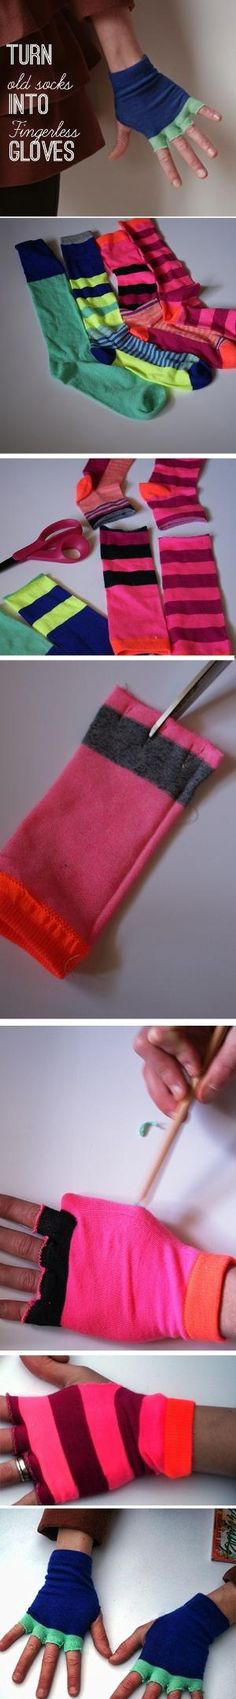 DIY gloves from old socks #DIY #crafts by Krista.S